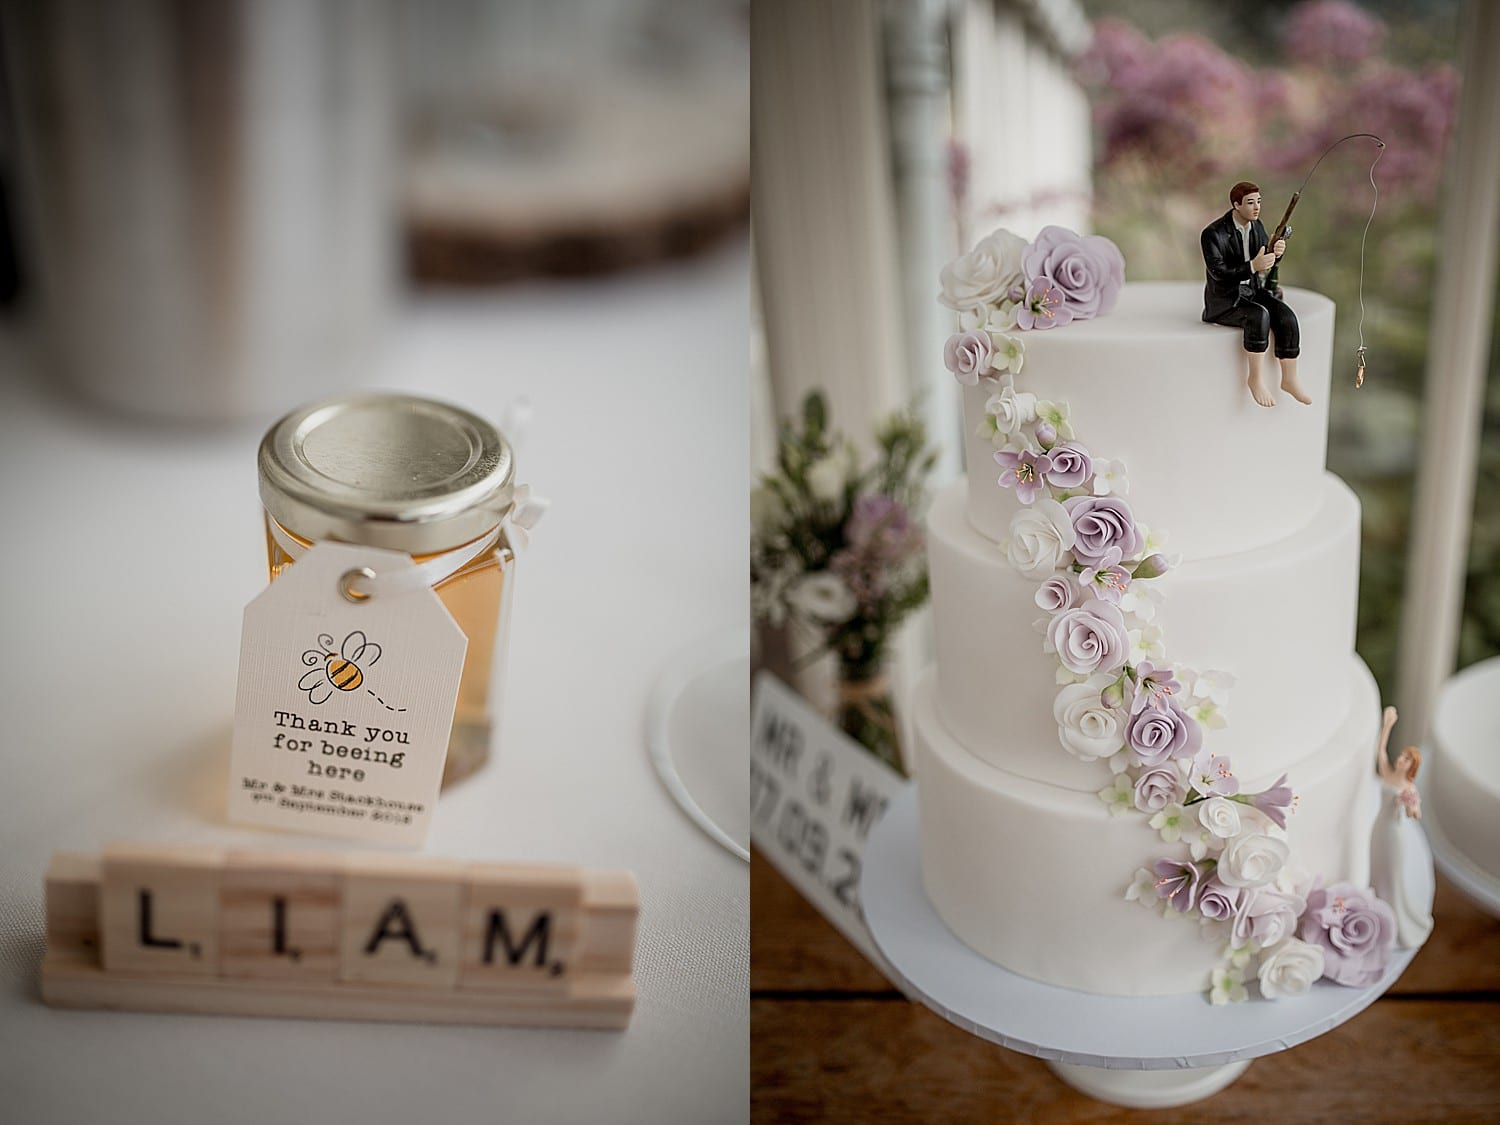 favours and wedding cake at abbeywood estate